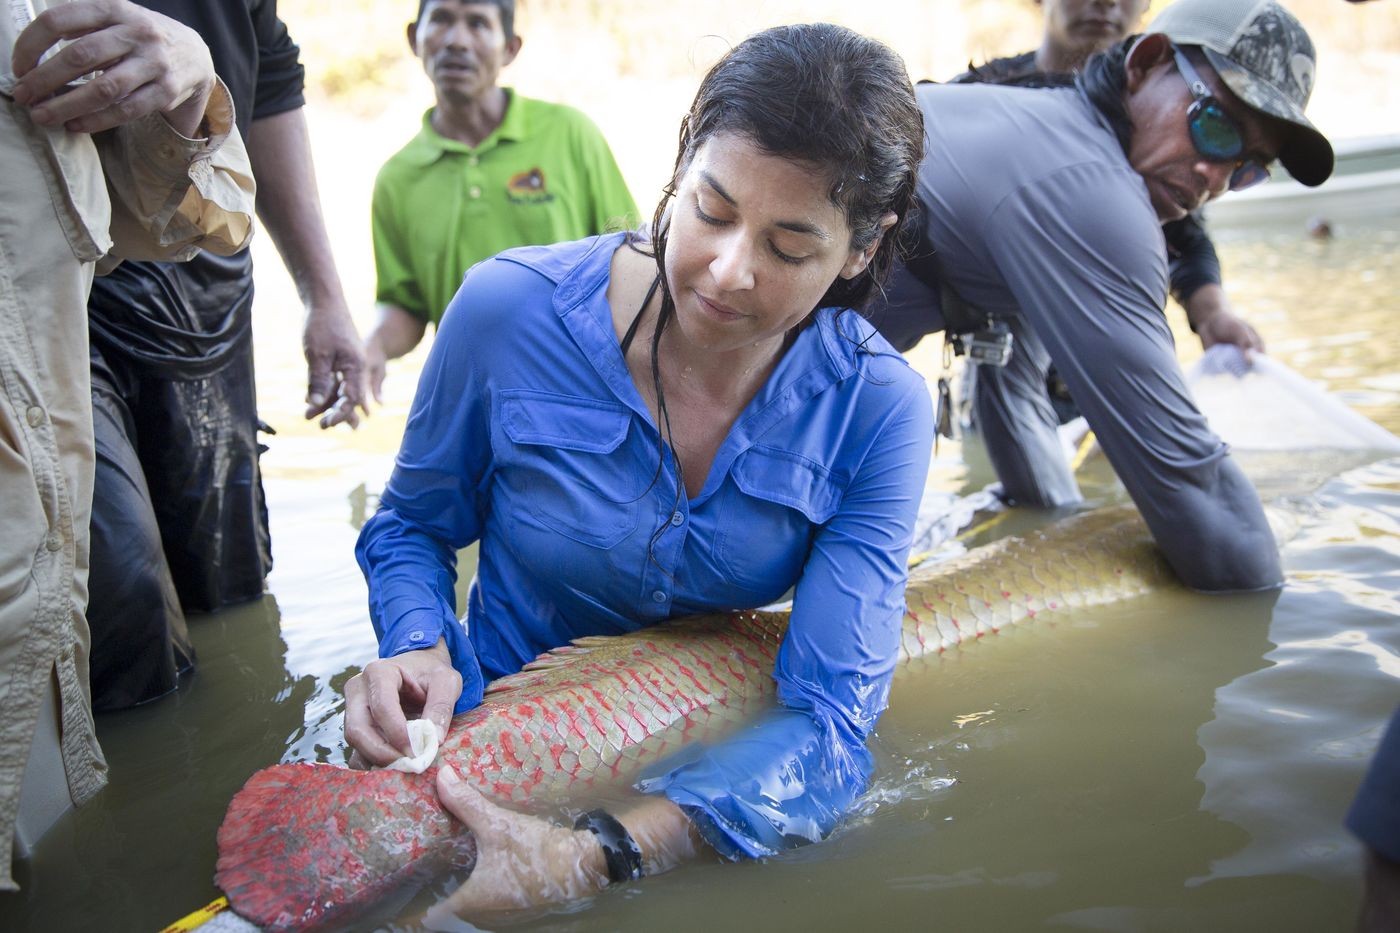 A woman, standing waist deep in water, tags an arapaima, a large freshwater fish. A man helps to hold the fish while several people in the background watch.